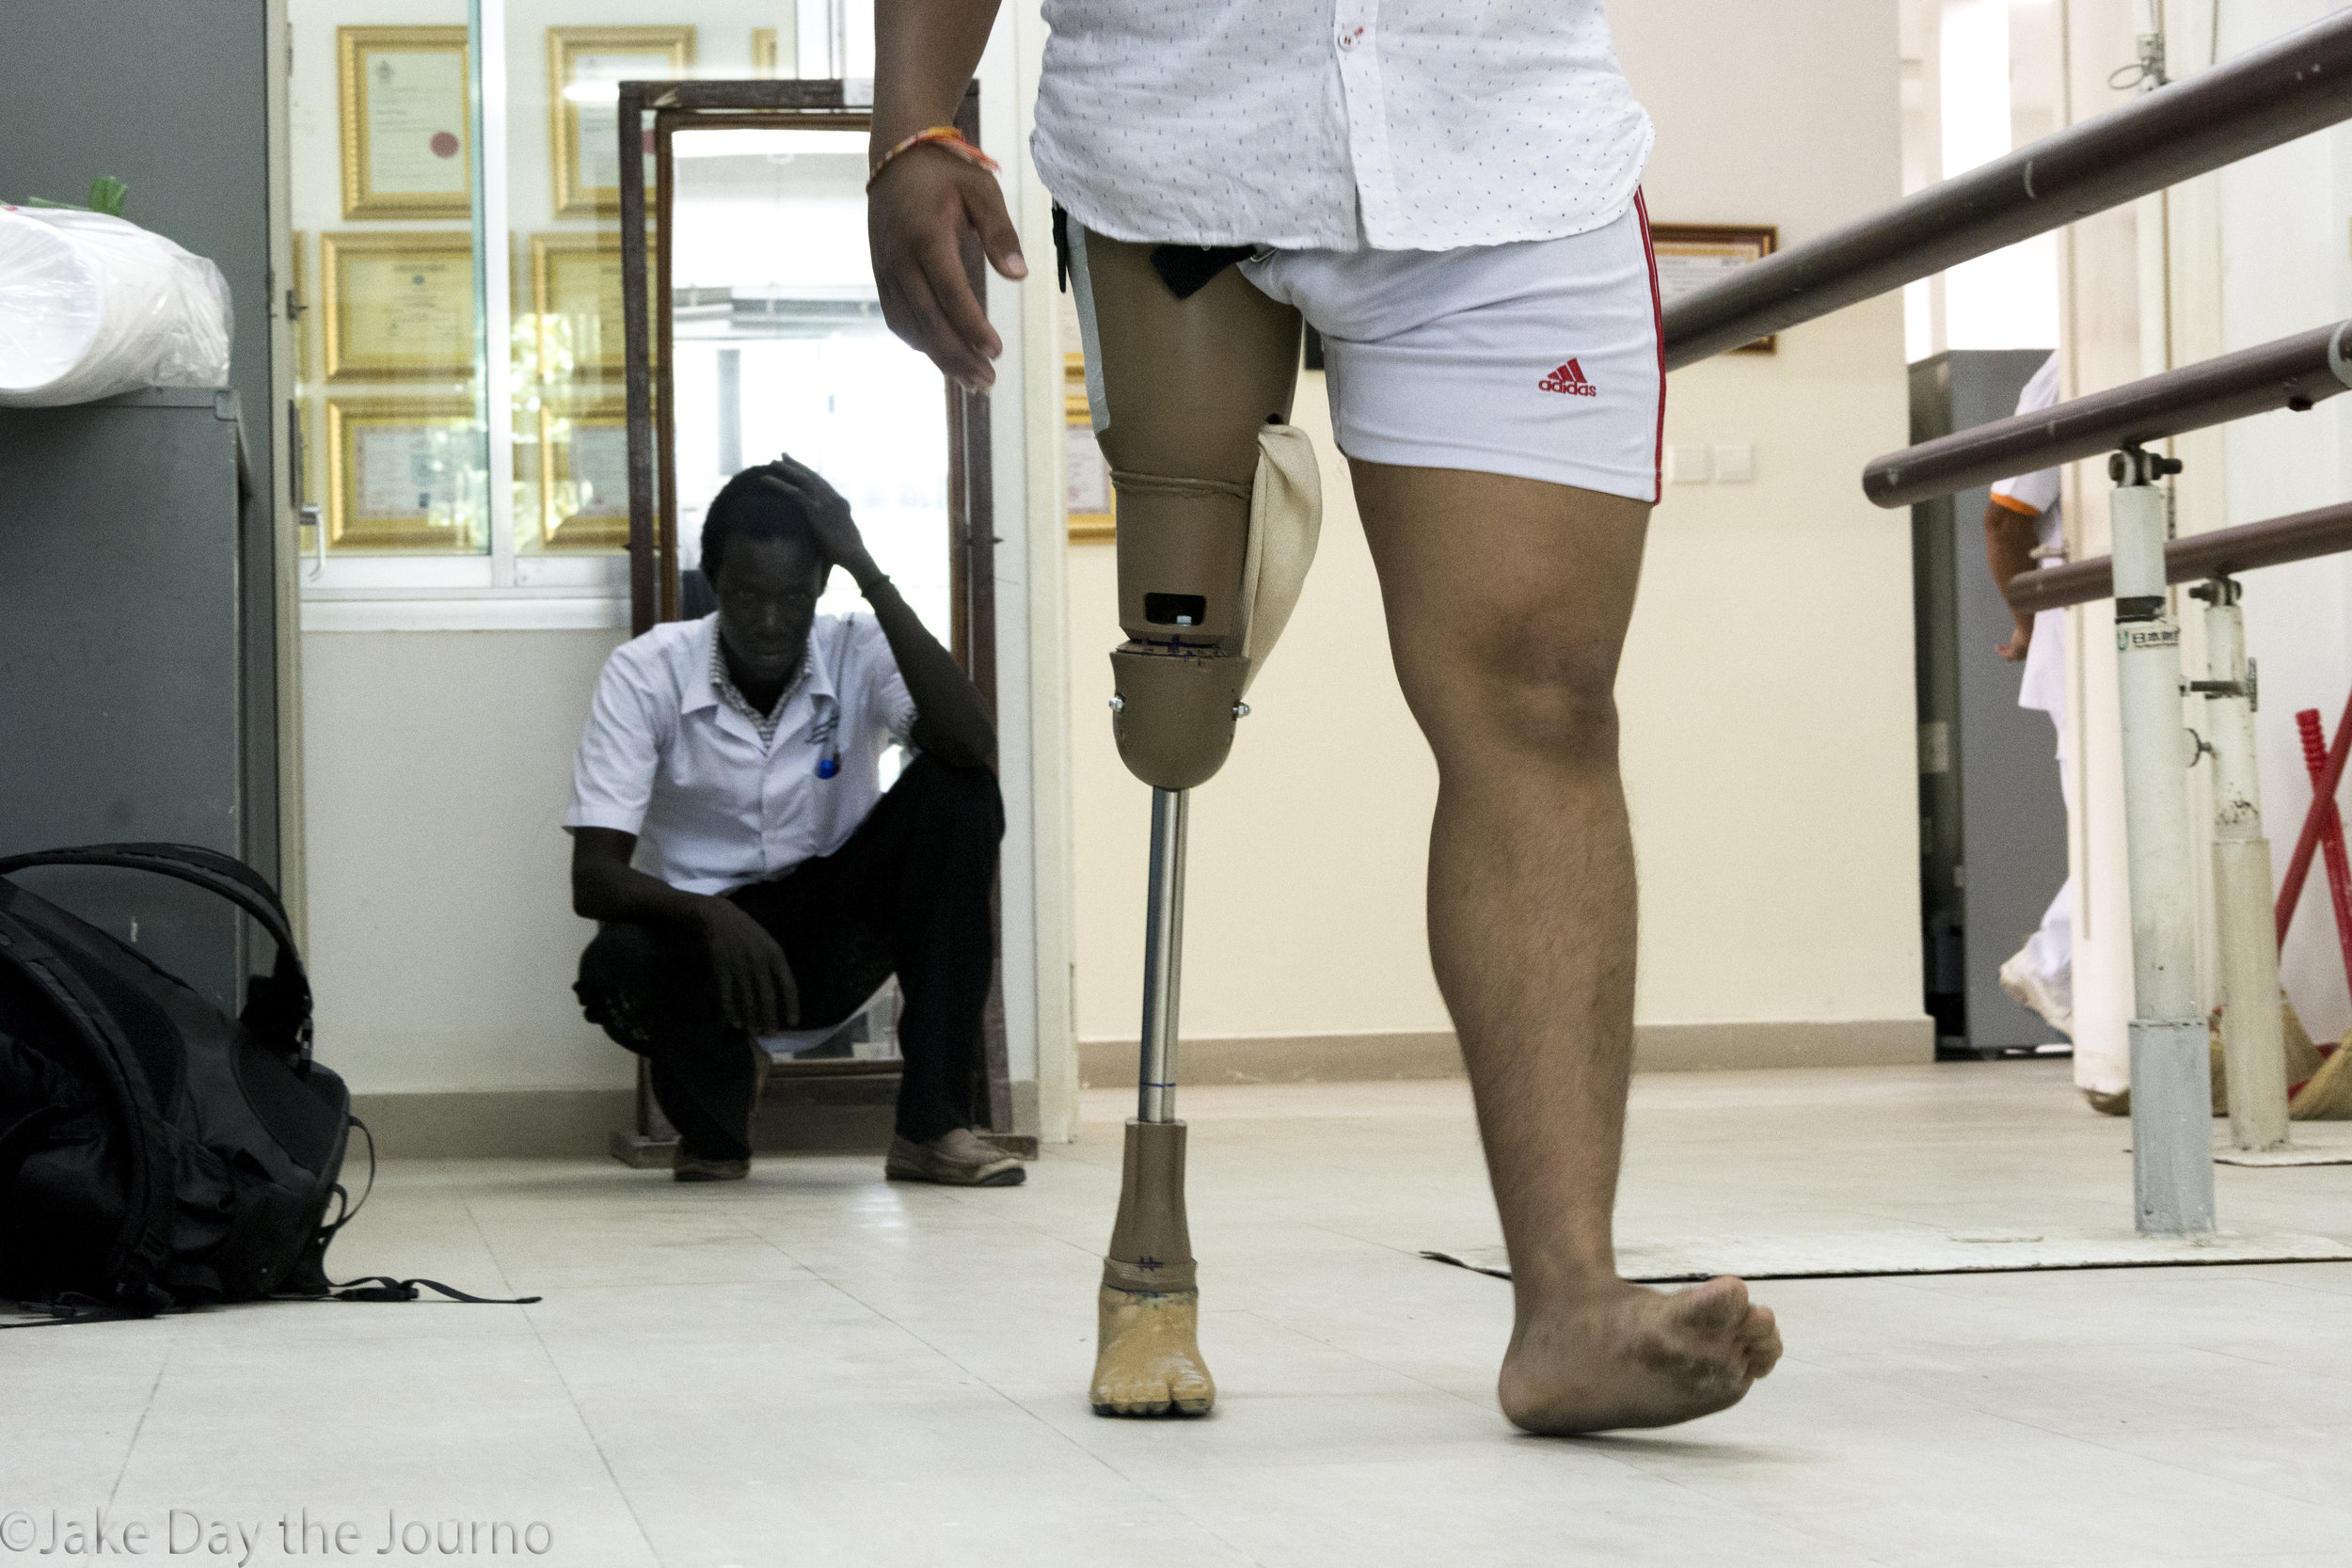 Second year student Tombura Joseph Kenyi, 23, watches Mean Teit Sha, 21, during gait testing at the Exceed Cambodian School of Prosthetics and Orthotics on 15/01/18 by Jake Day. Mr Sha is wearing a prosthetic made by Mr Kenyi. The quality of the prosthetic is to be assessed during examinations the following day.